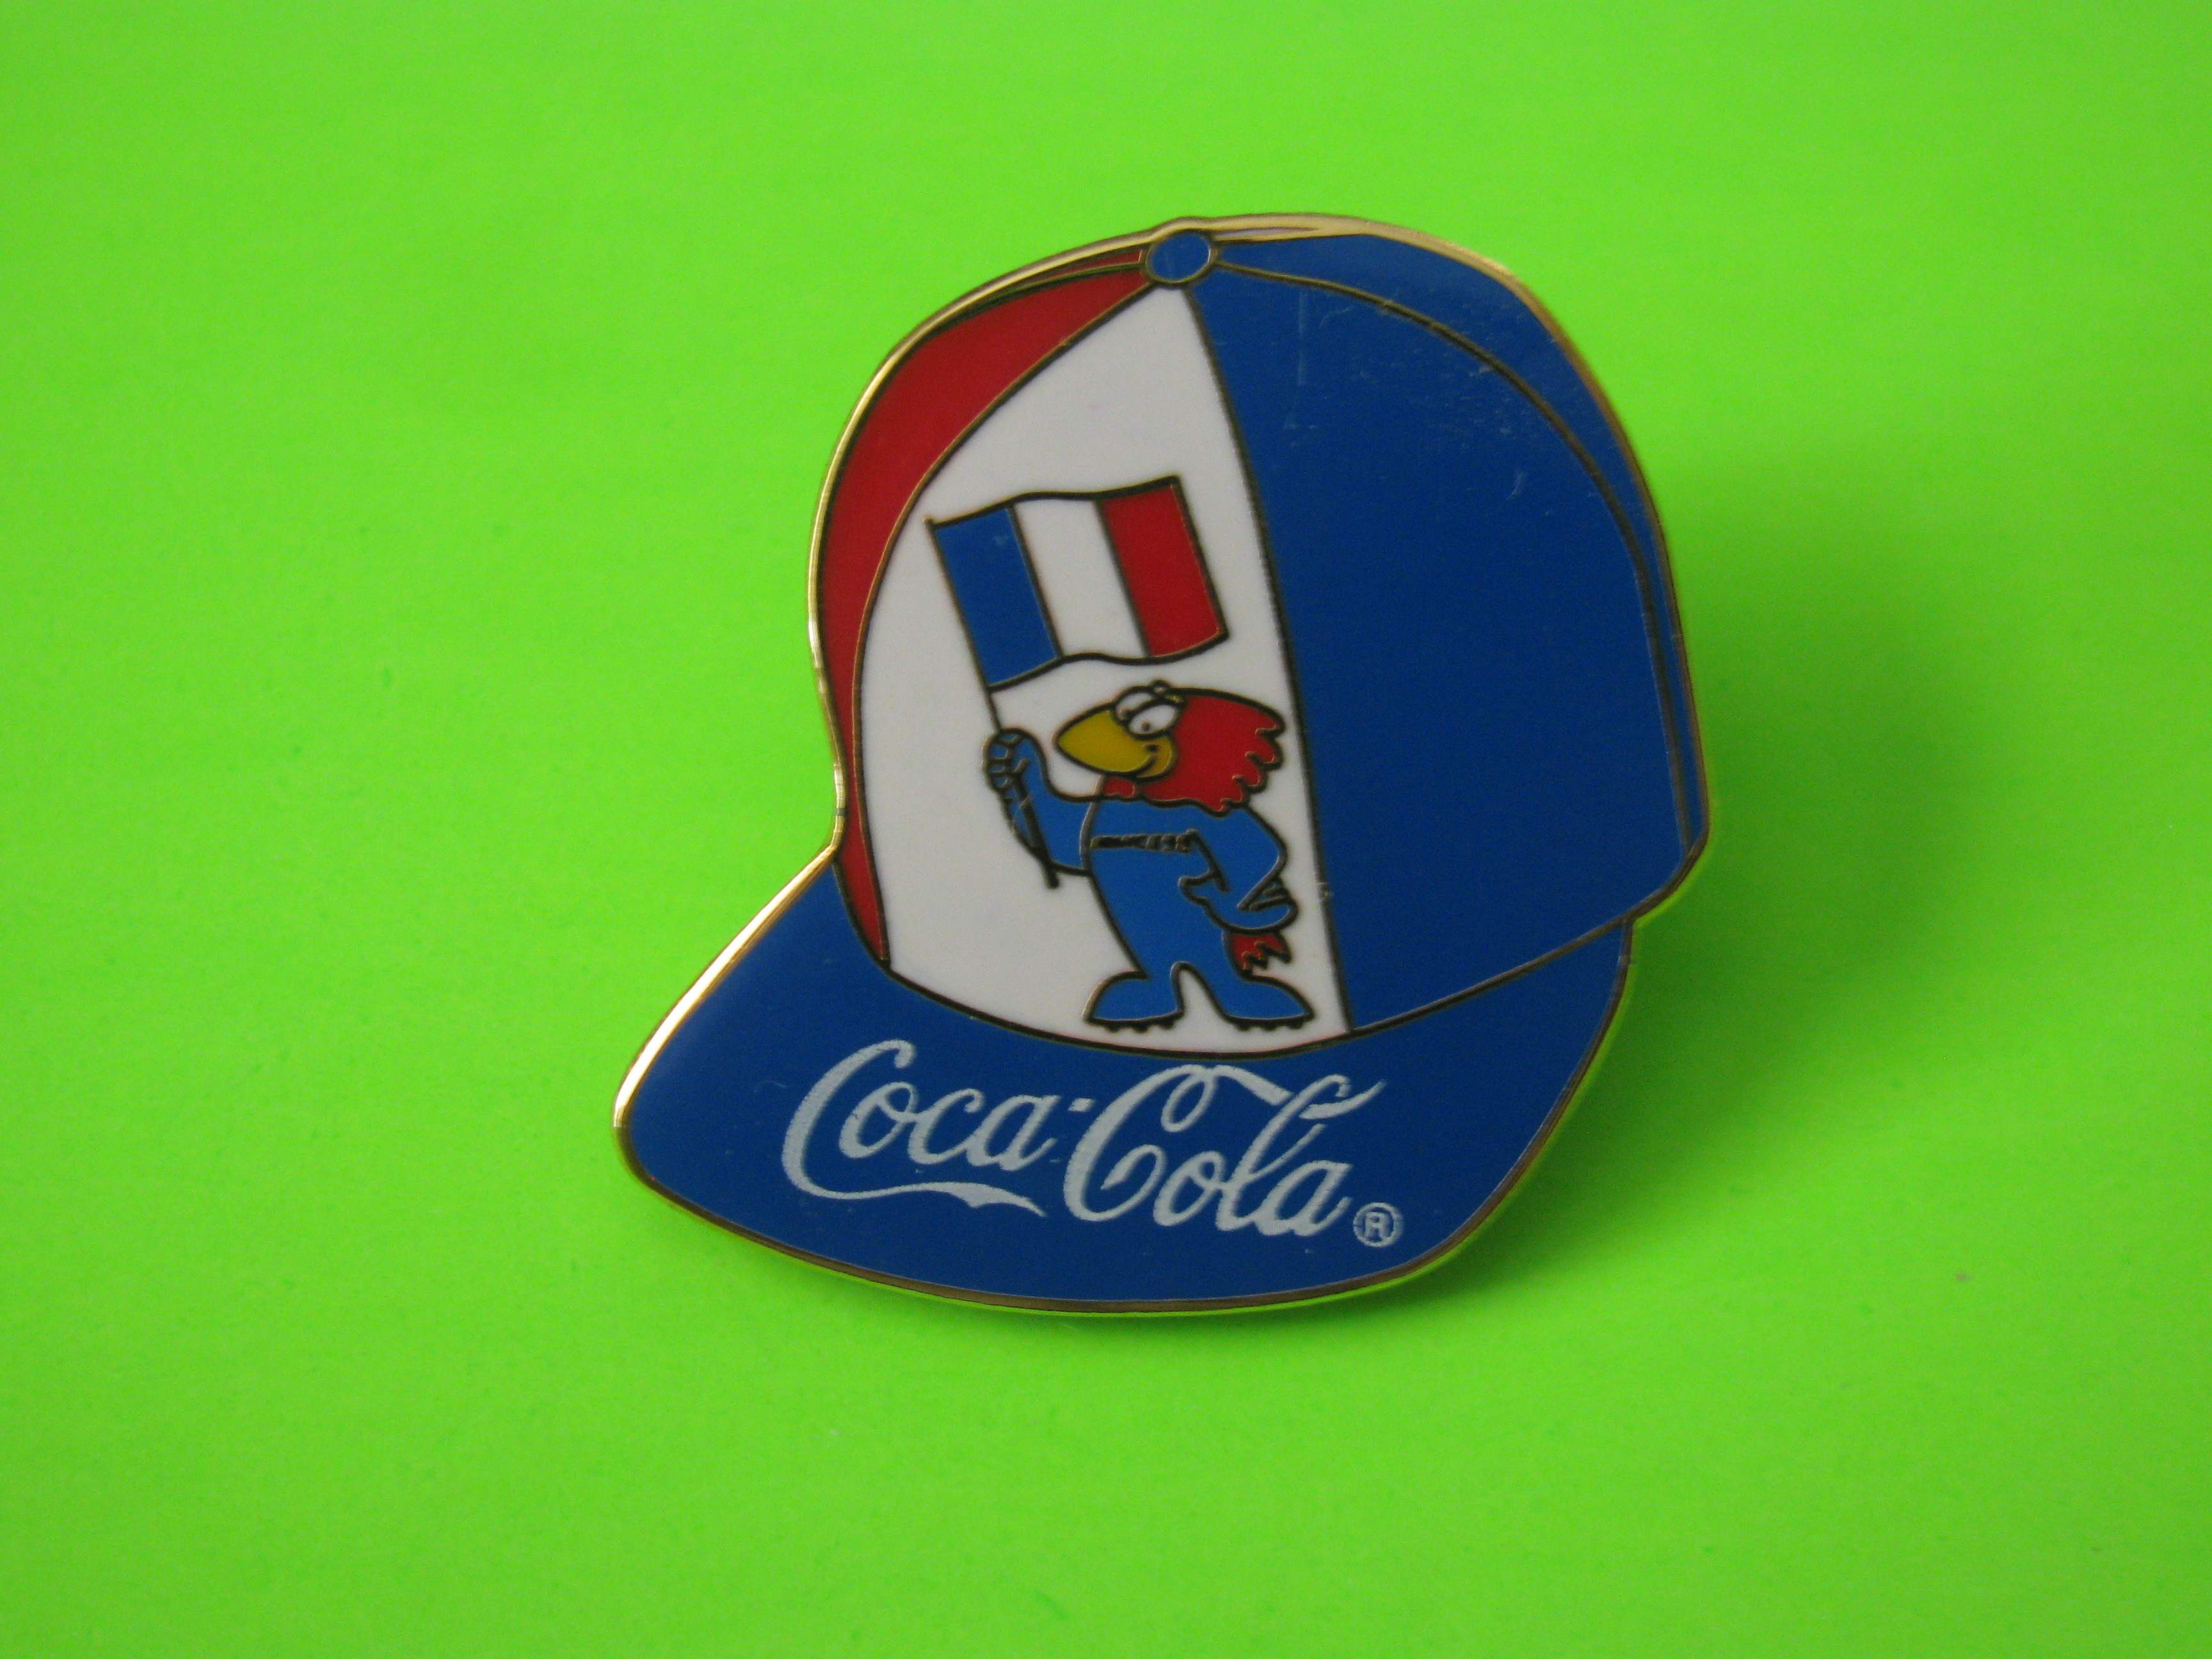 1995 Coca-Cola Promo Soccer Pin, France, Ball Cap Shaped, Metal with Butterfly Clutch